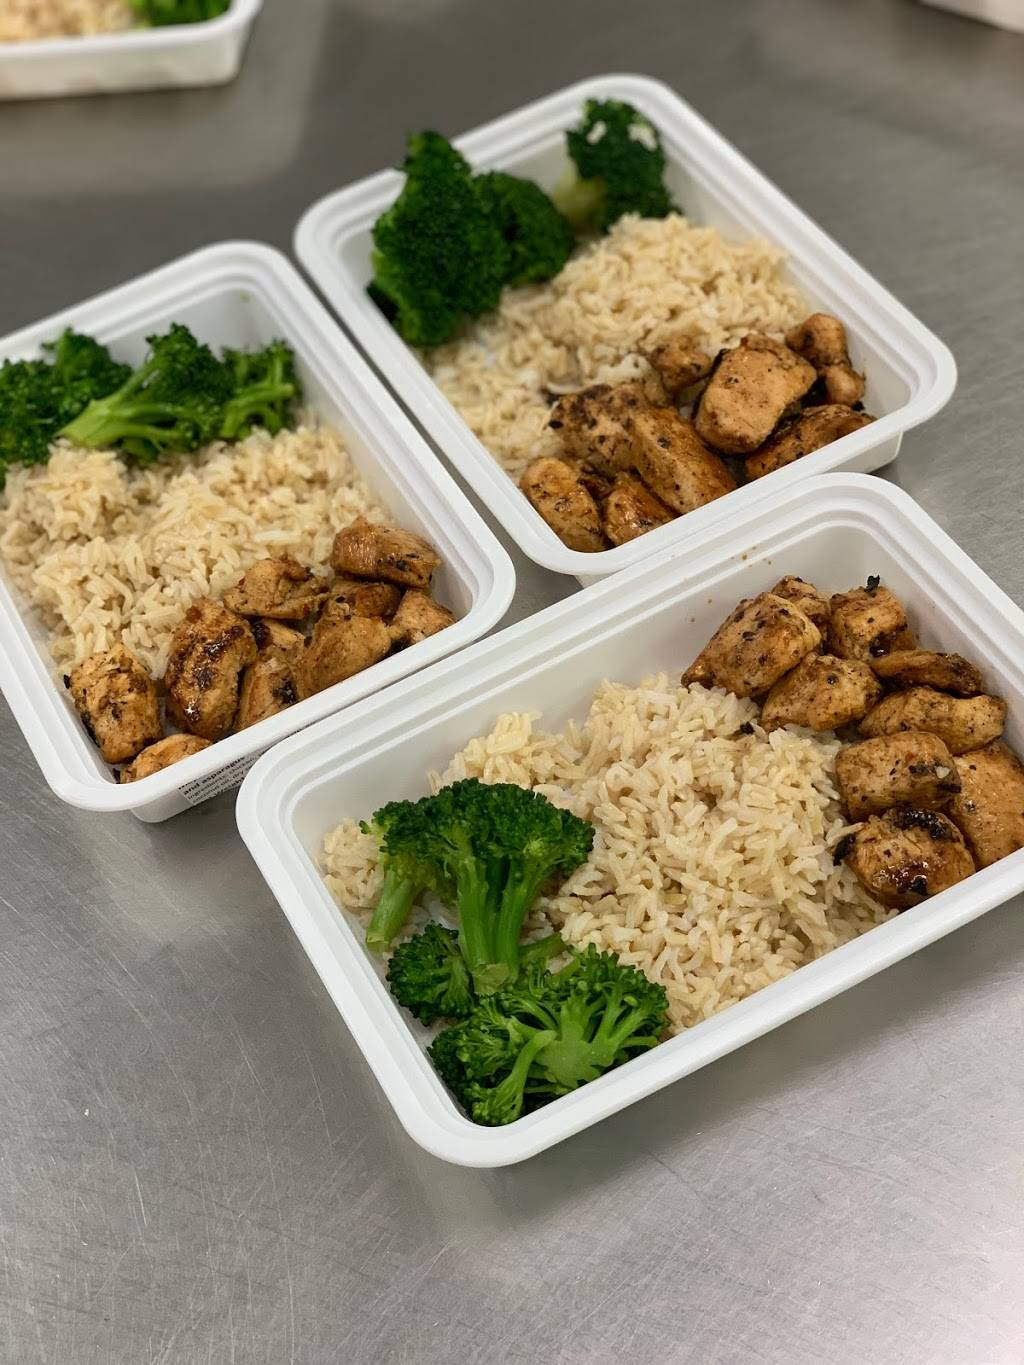 Health Junkie | meal delivery | 1539 5th Ave S, South St Paul, MN 55075, USA | 7637036855 OR +1 763-703-6855